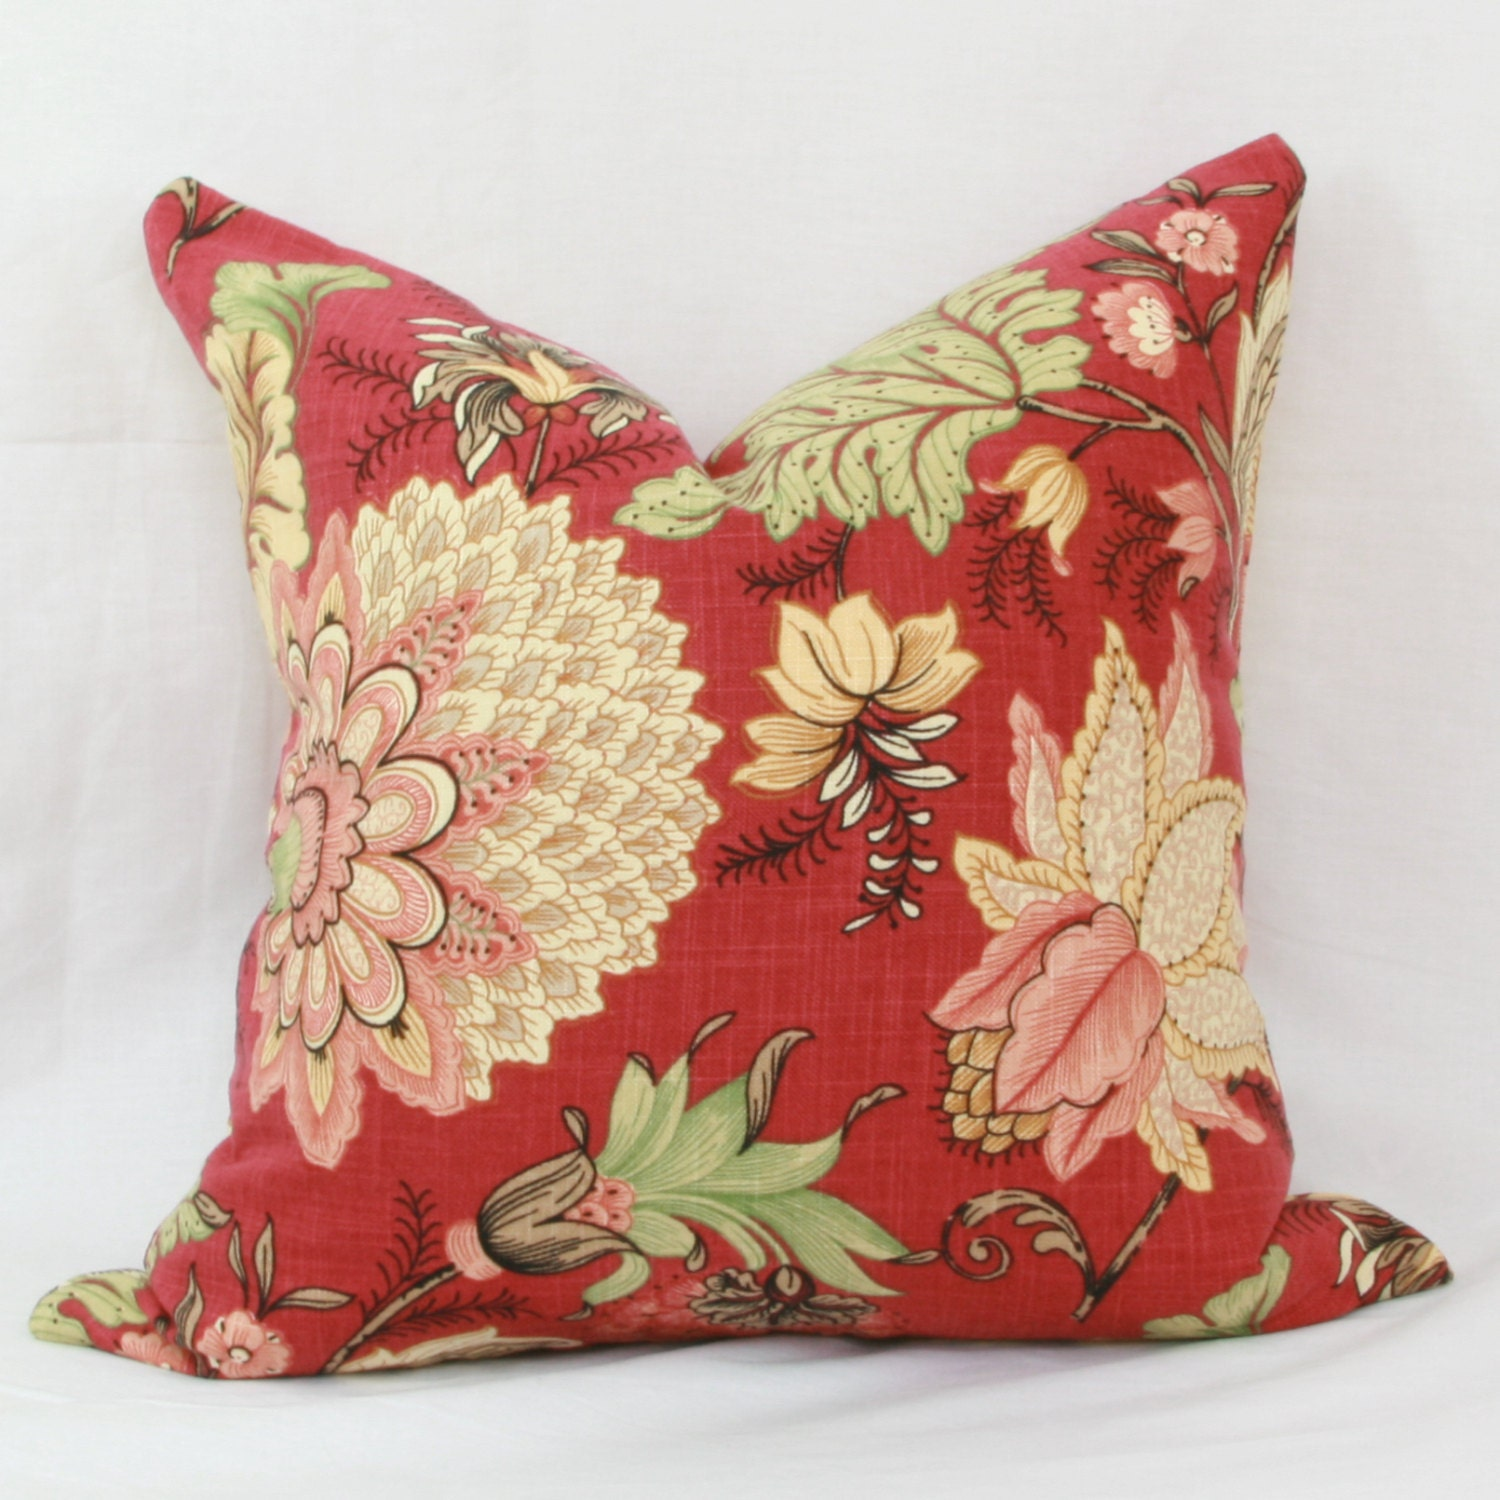 Decorative Floral Pillow Covers : Red green & yellow floral decorative throw pillow cover.